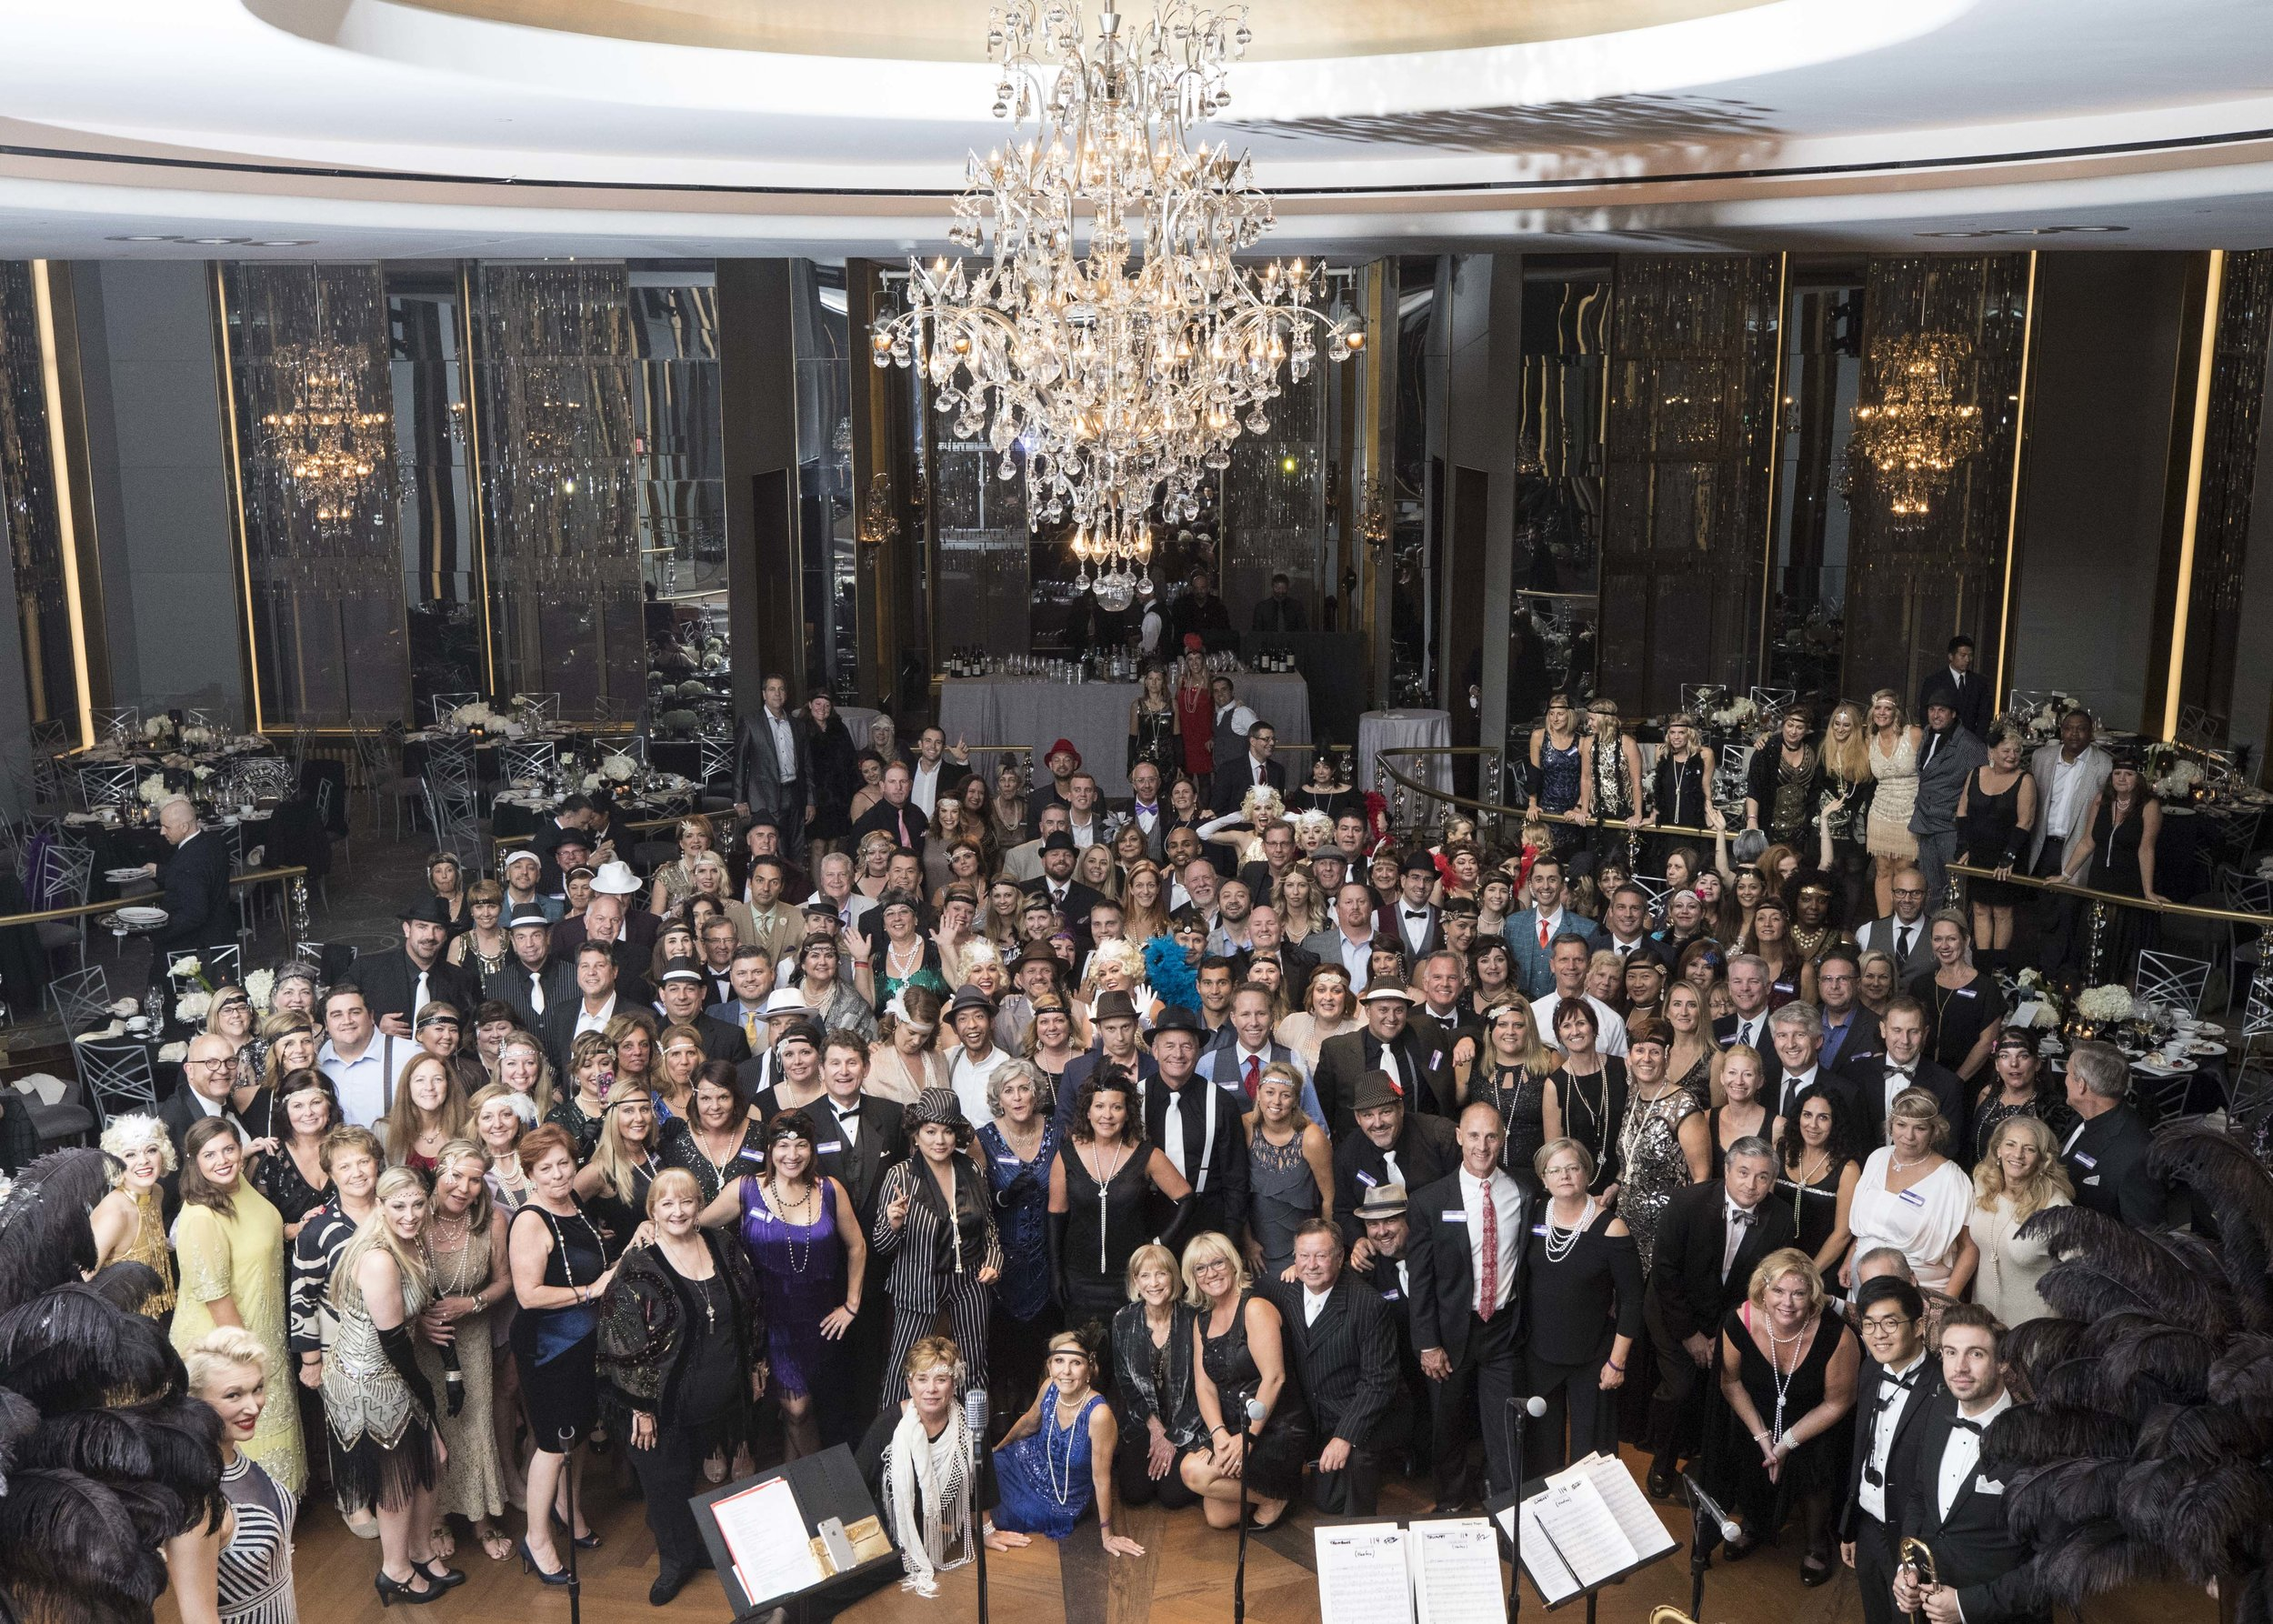 The Great Gatsby Bash at The Rainbow Room!